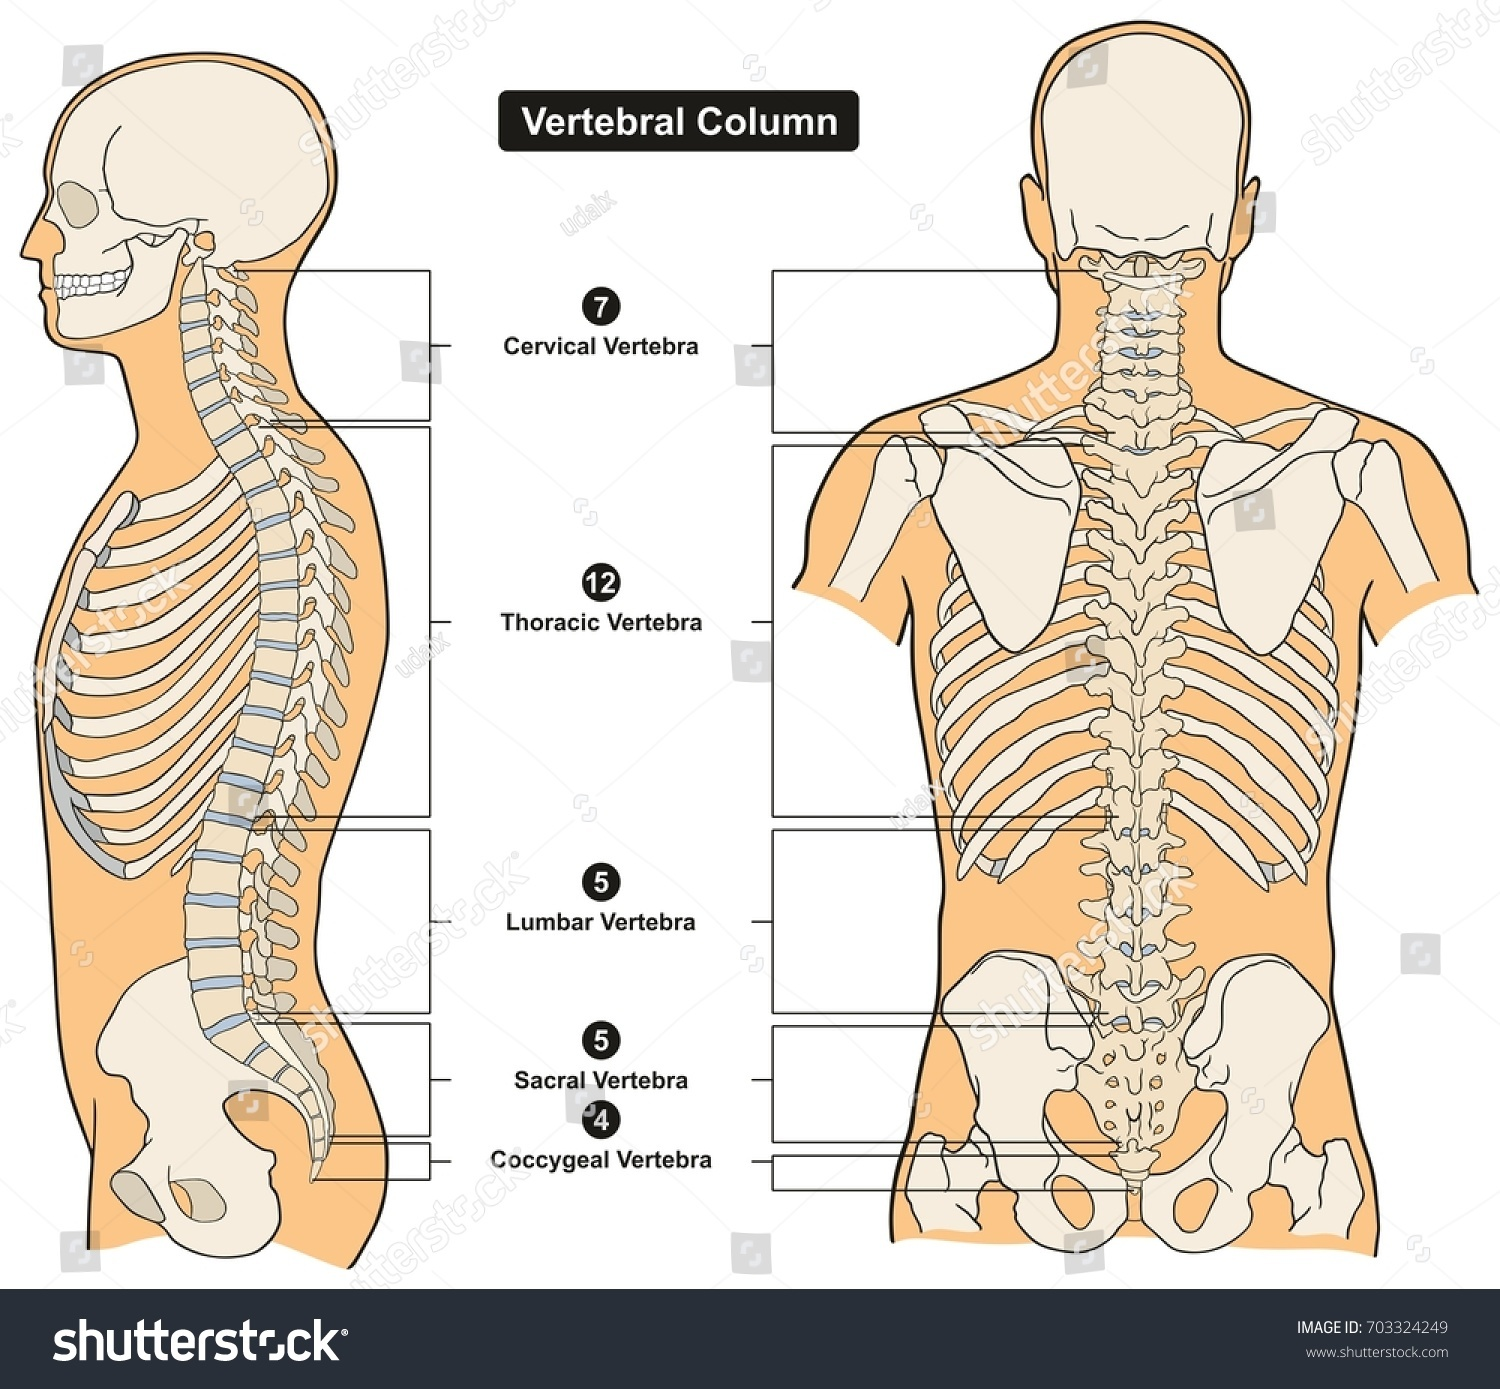 Vertebral Column Human Body Anatomy Infograpic Stock Vector (2018 ...